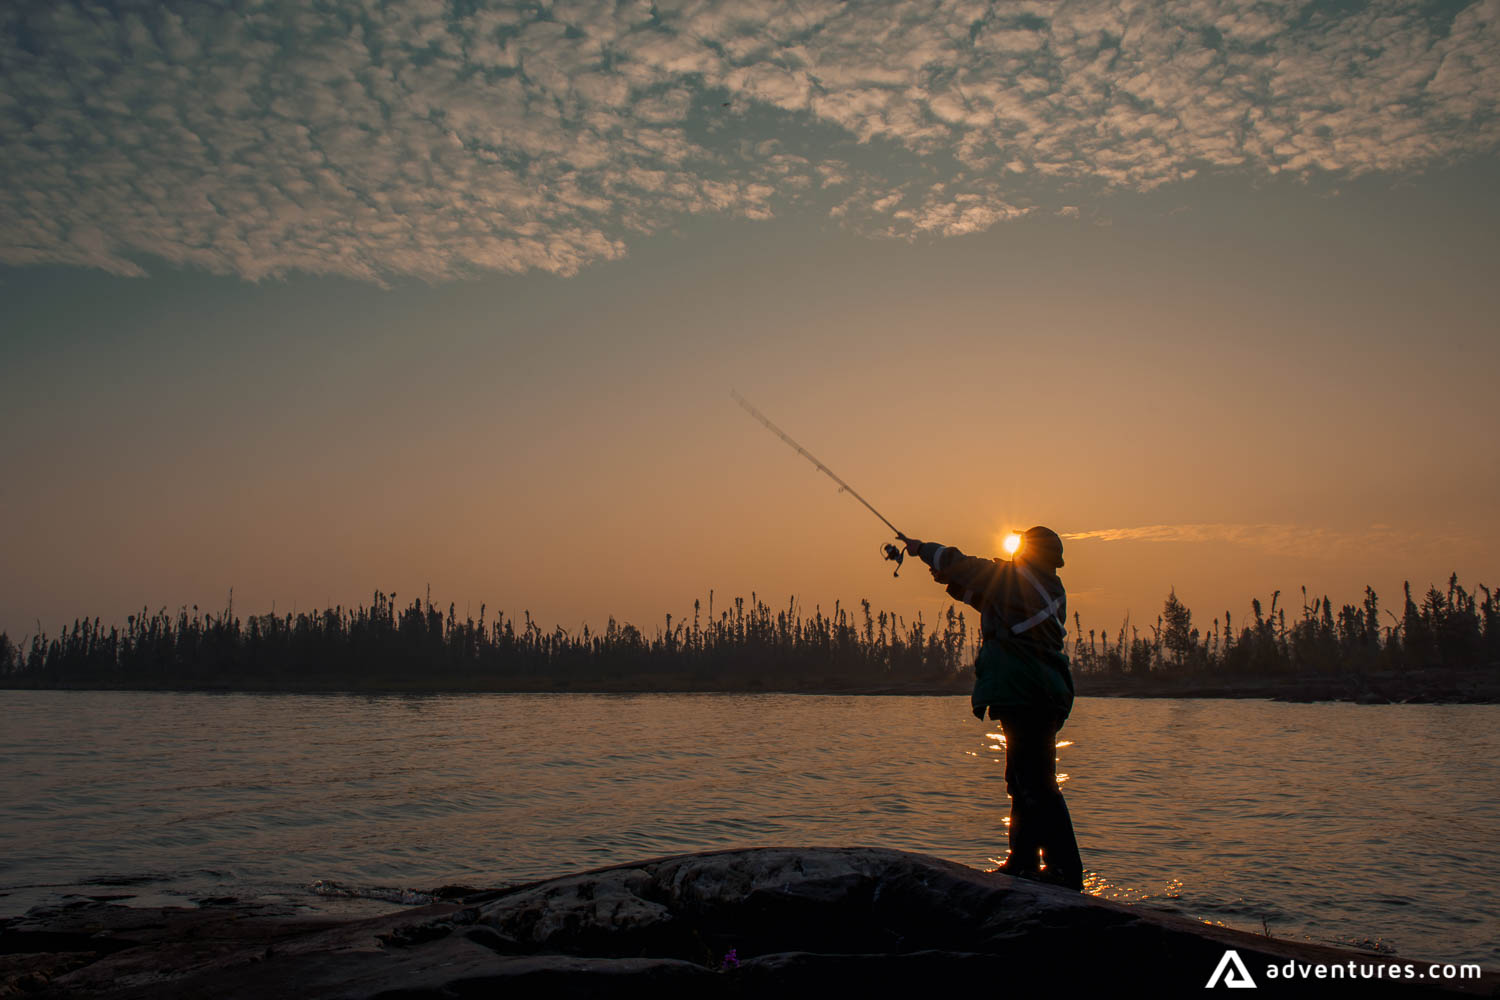 Man fly fishing at sunset